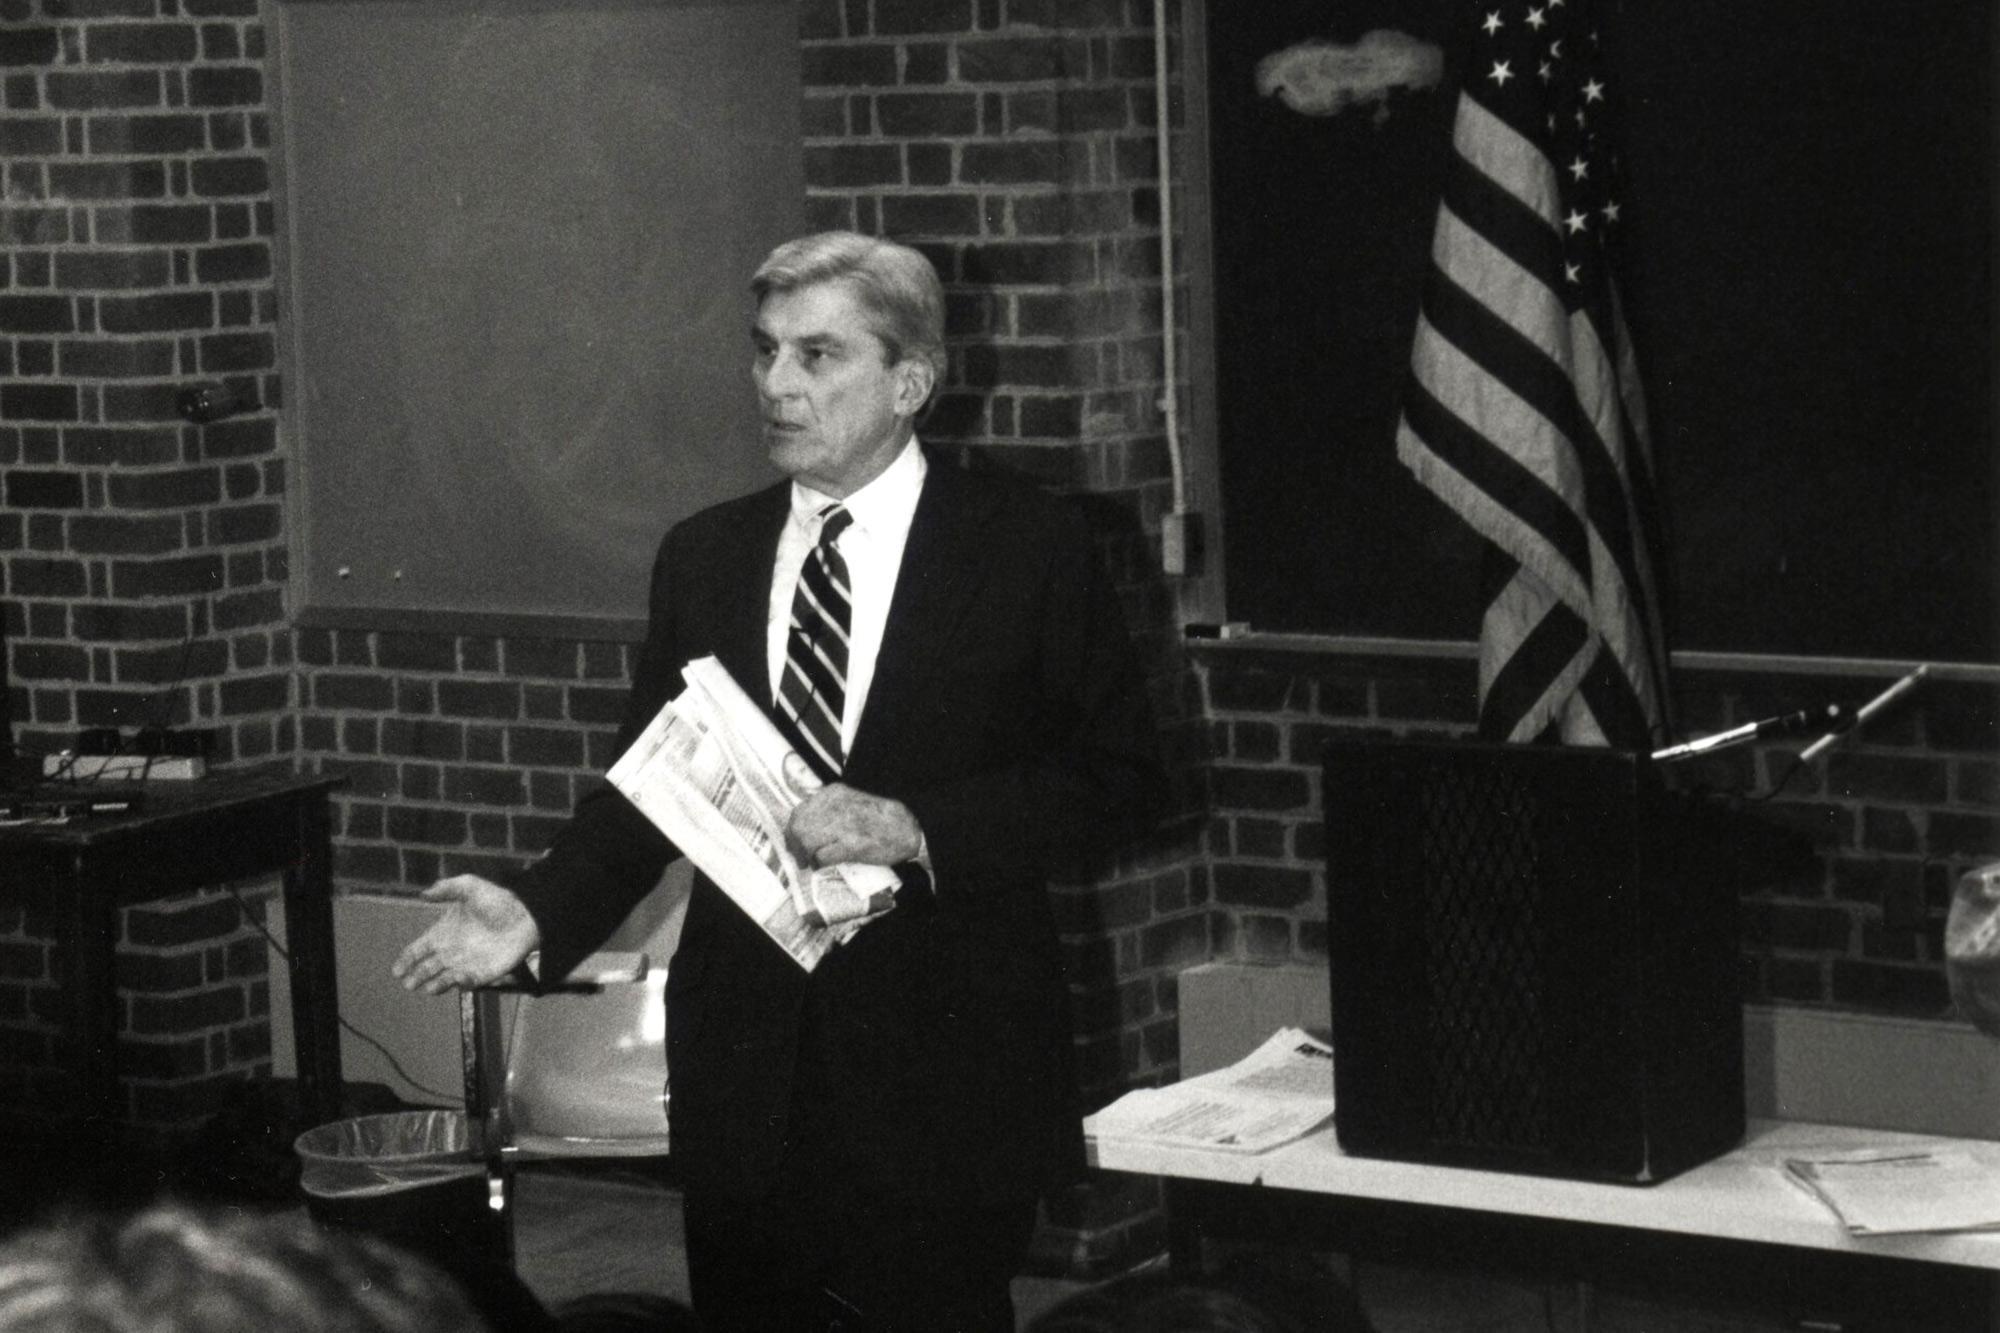 Former U.S. Sen. John W. Warner addresses UVA students on a visit to Grounds in 1994. Warner is an alumnus of the UVA School of Law.